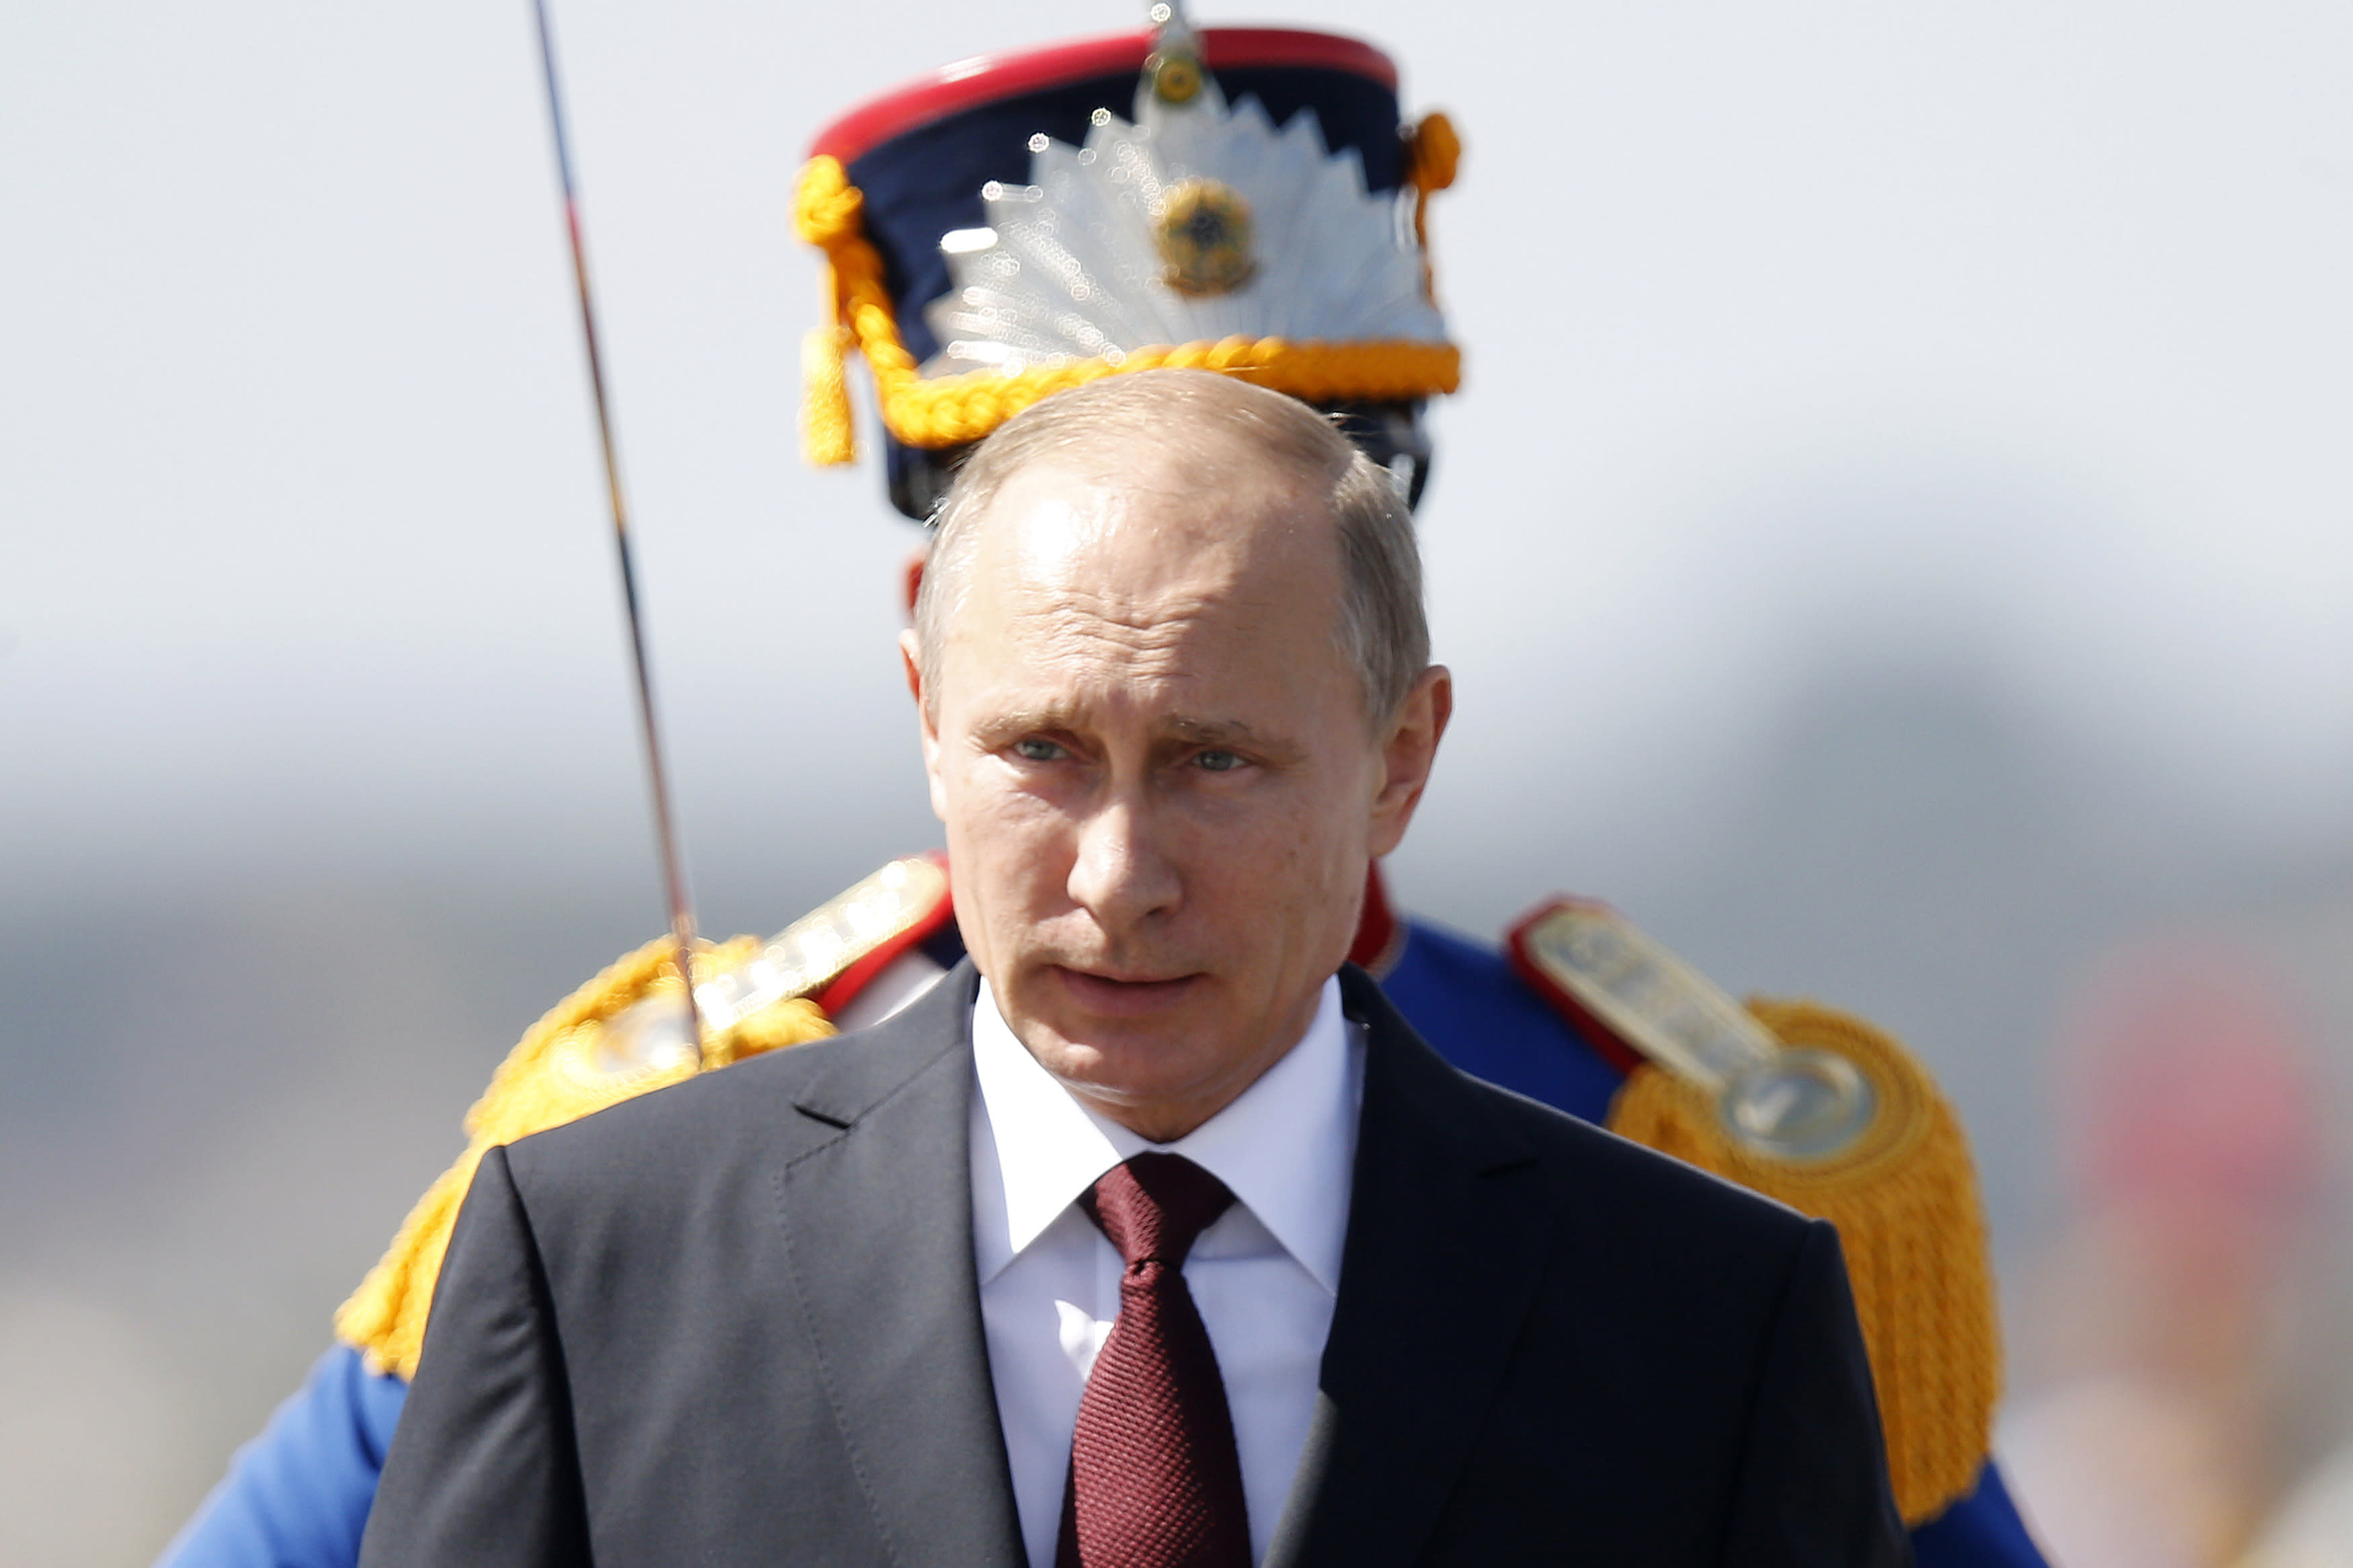 It's time to start worrying about what Russia's been up to in Latin America